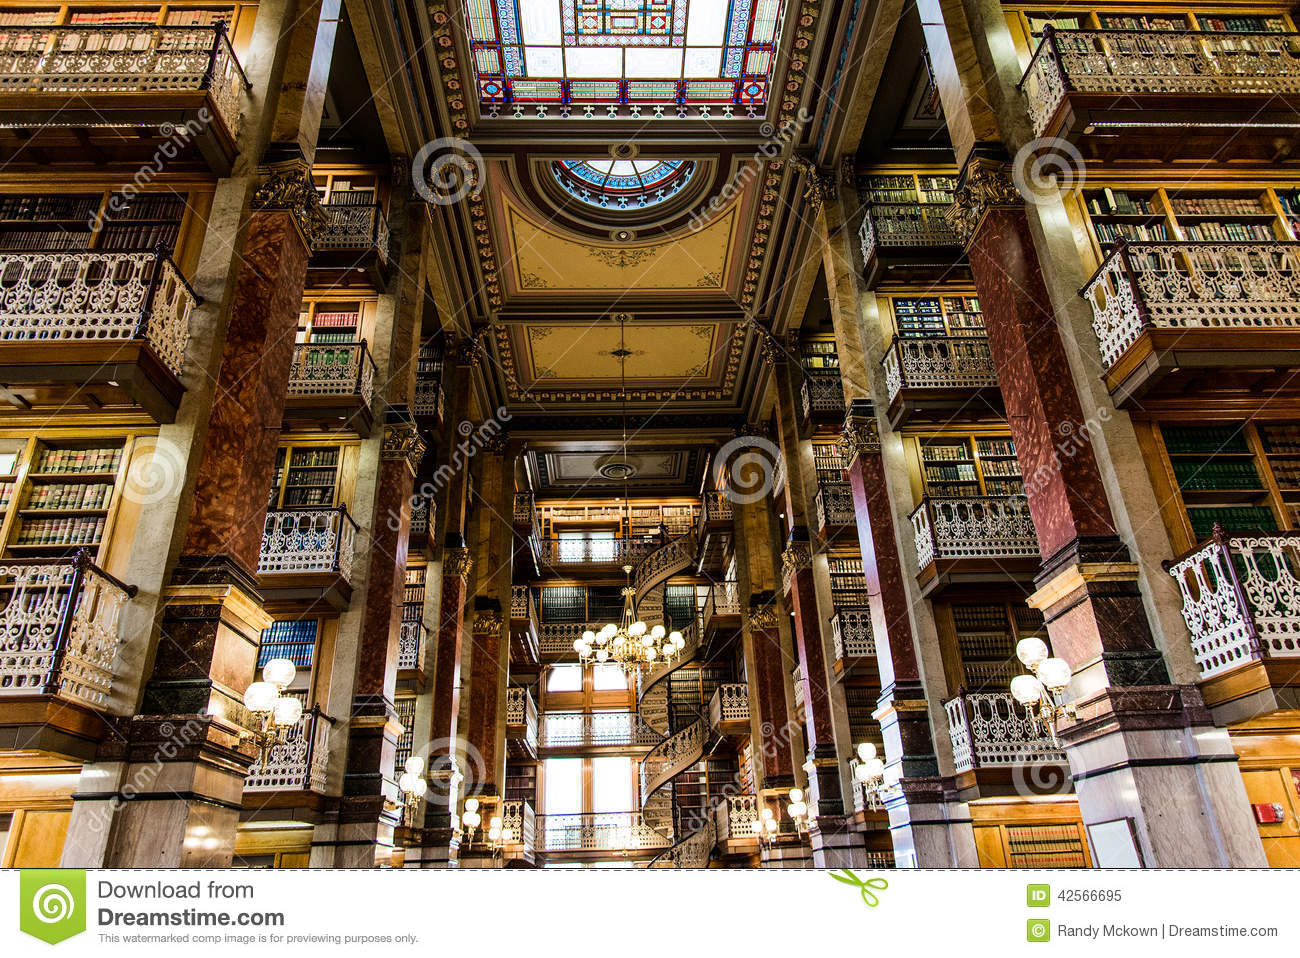 Law Library Inside the Des Moines Iowa State Capital building with